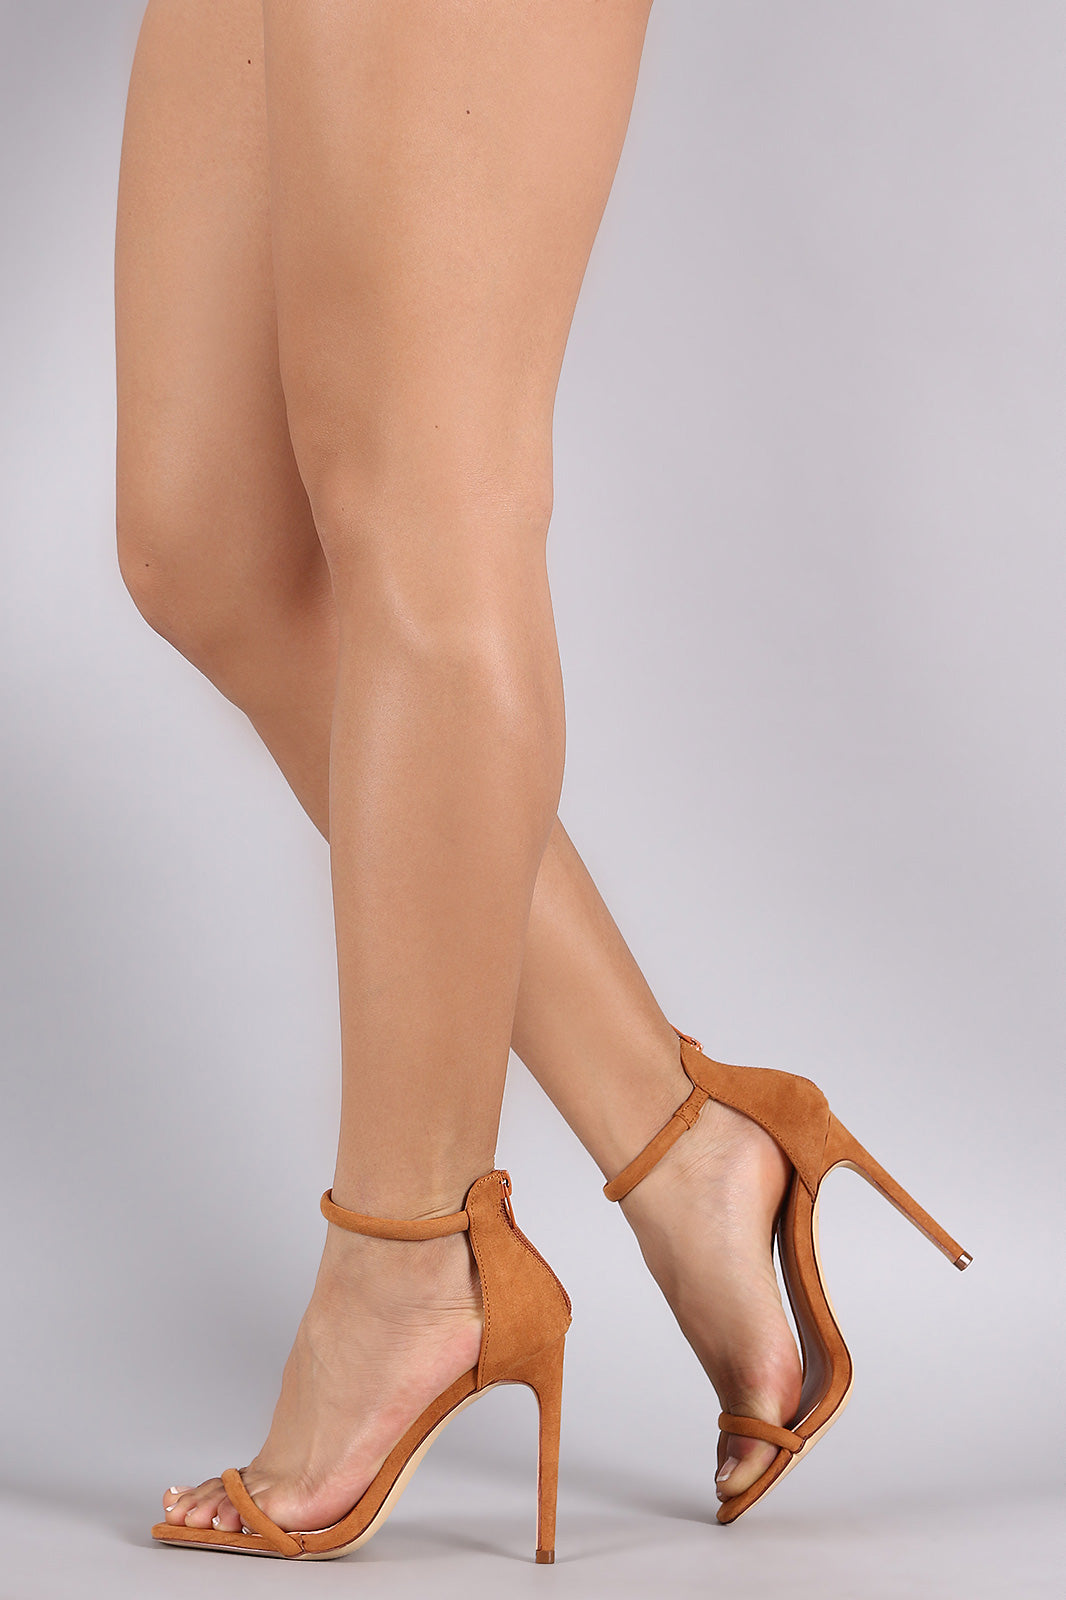 Liliana Suede Double Strap Open Toe Stiletto Heel - Thick 'N' Curvy Shop - 4